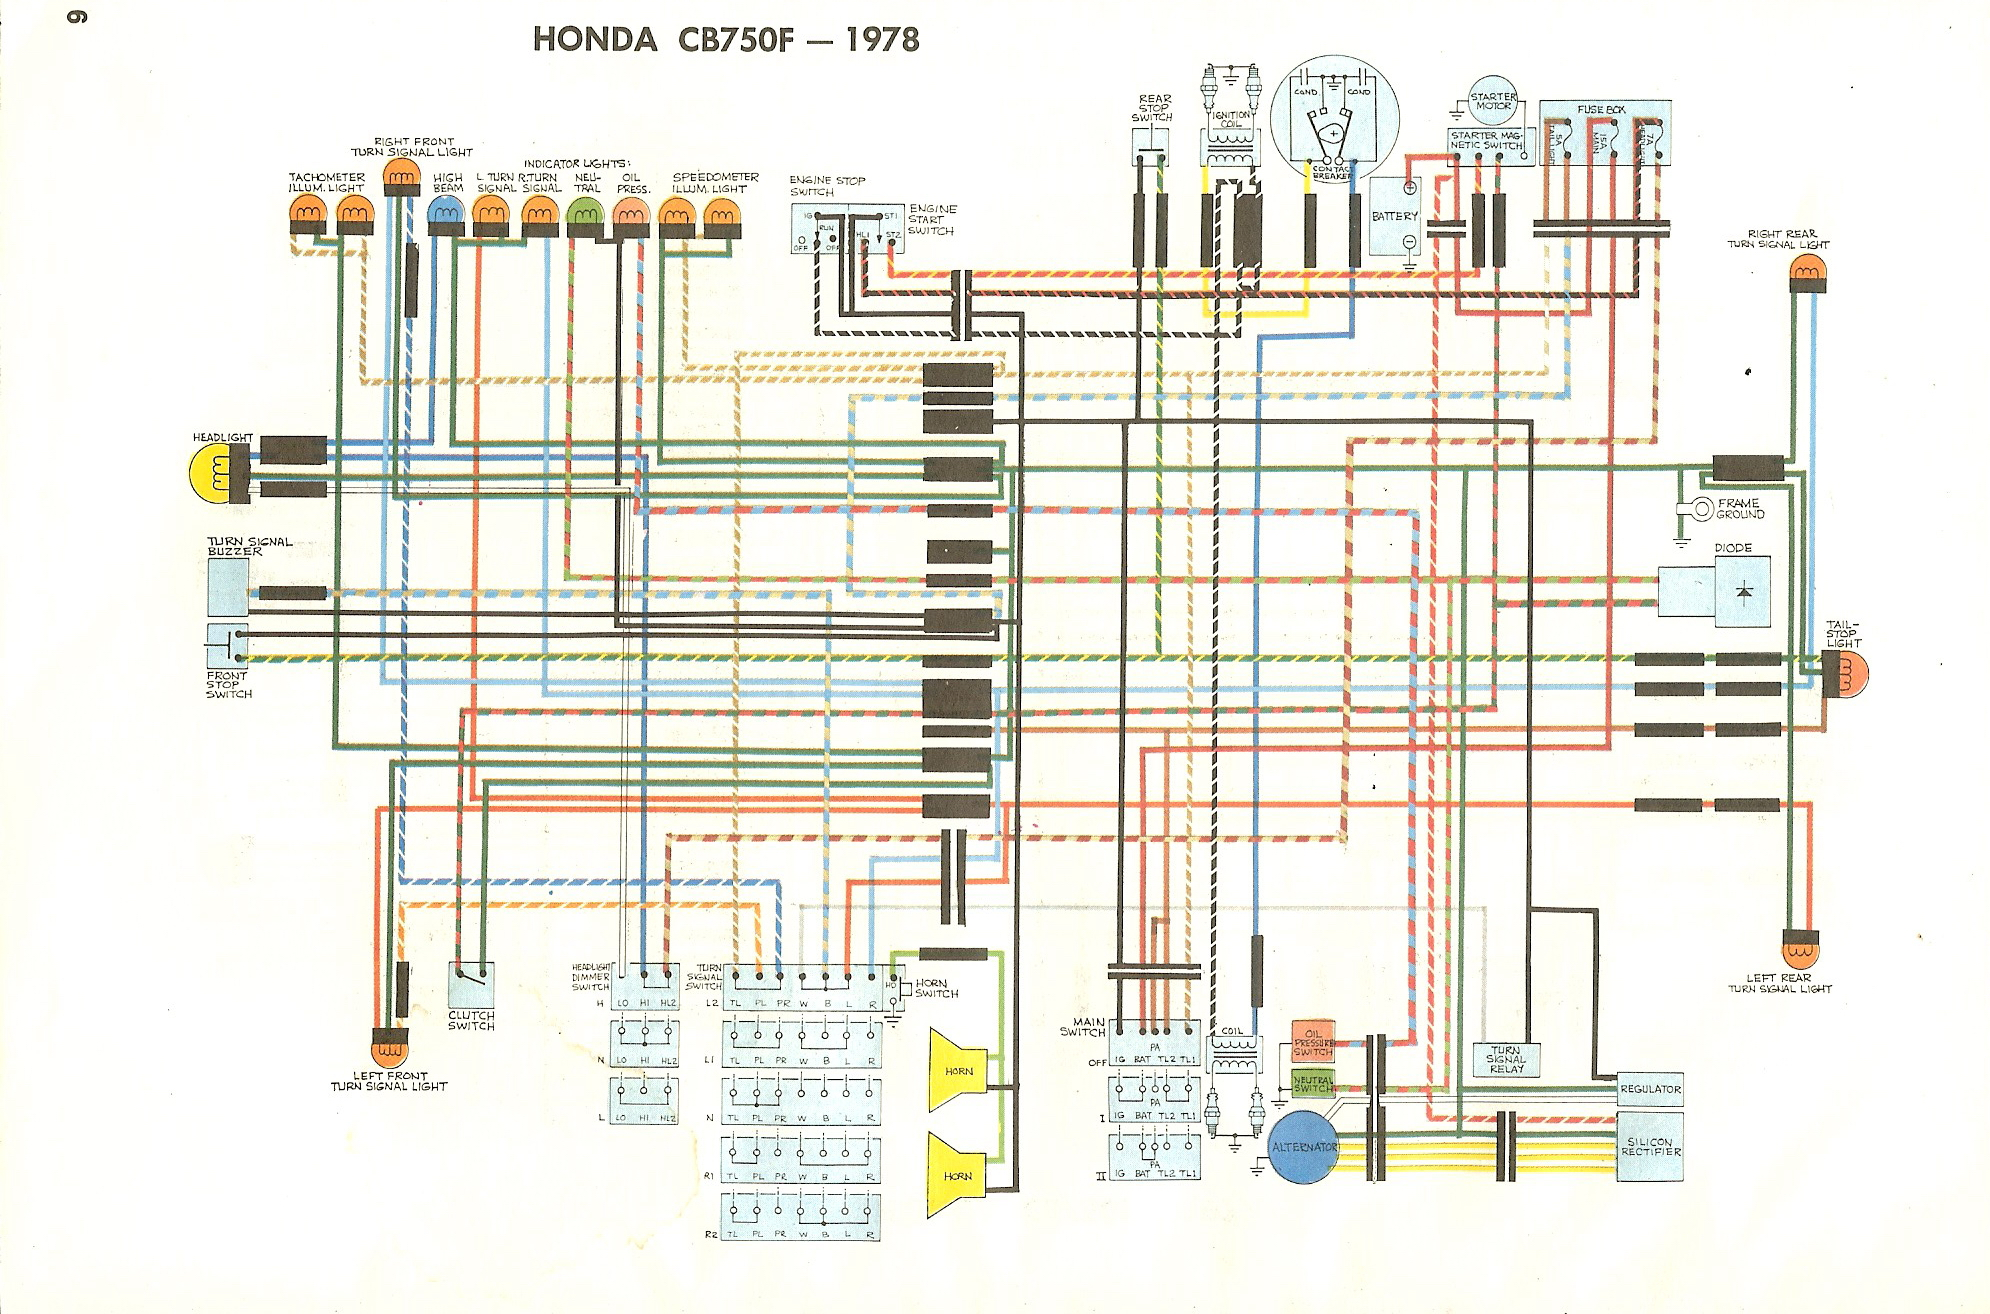 hight resolution of cb400t wiring diagram wiring diagram mega mix cb400t wiring diagram wiring diagram fascinating 1978 honda cb400t cb400 wiring diagram